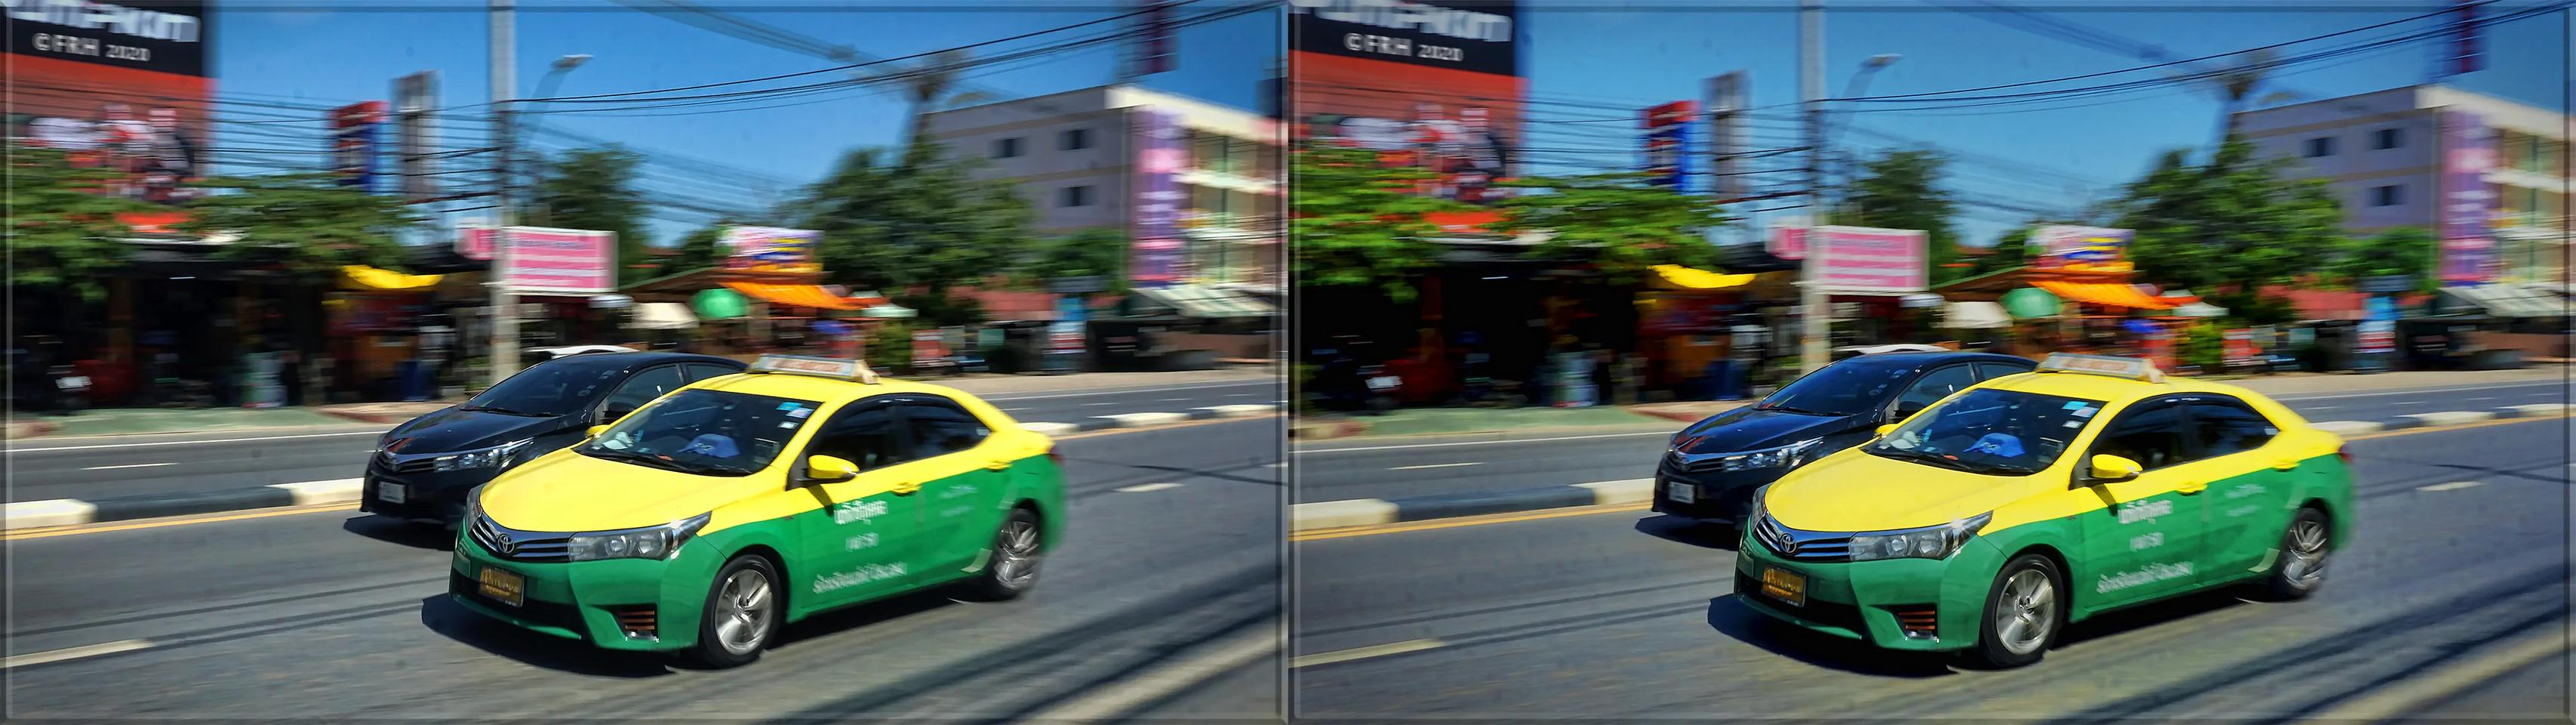 Blurry Green and Yellow Taxi